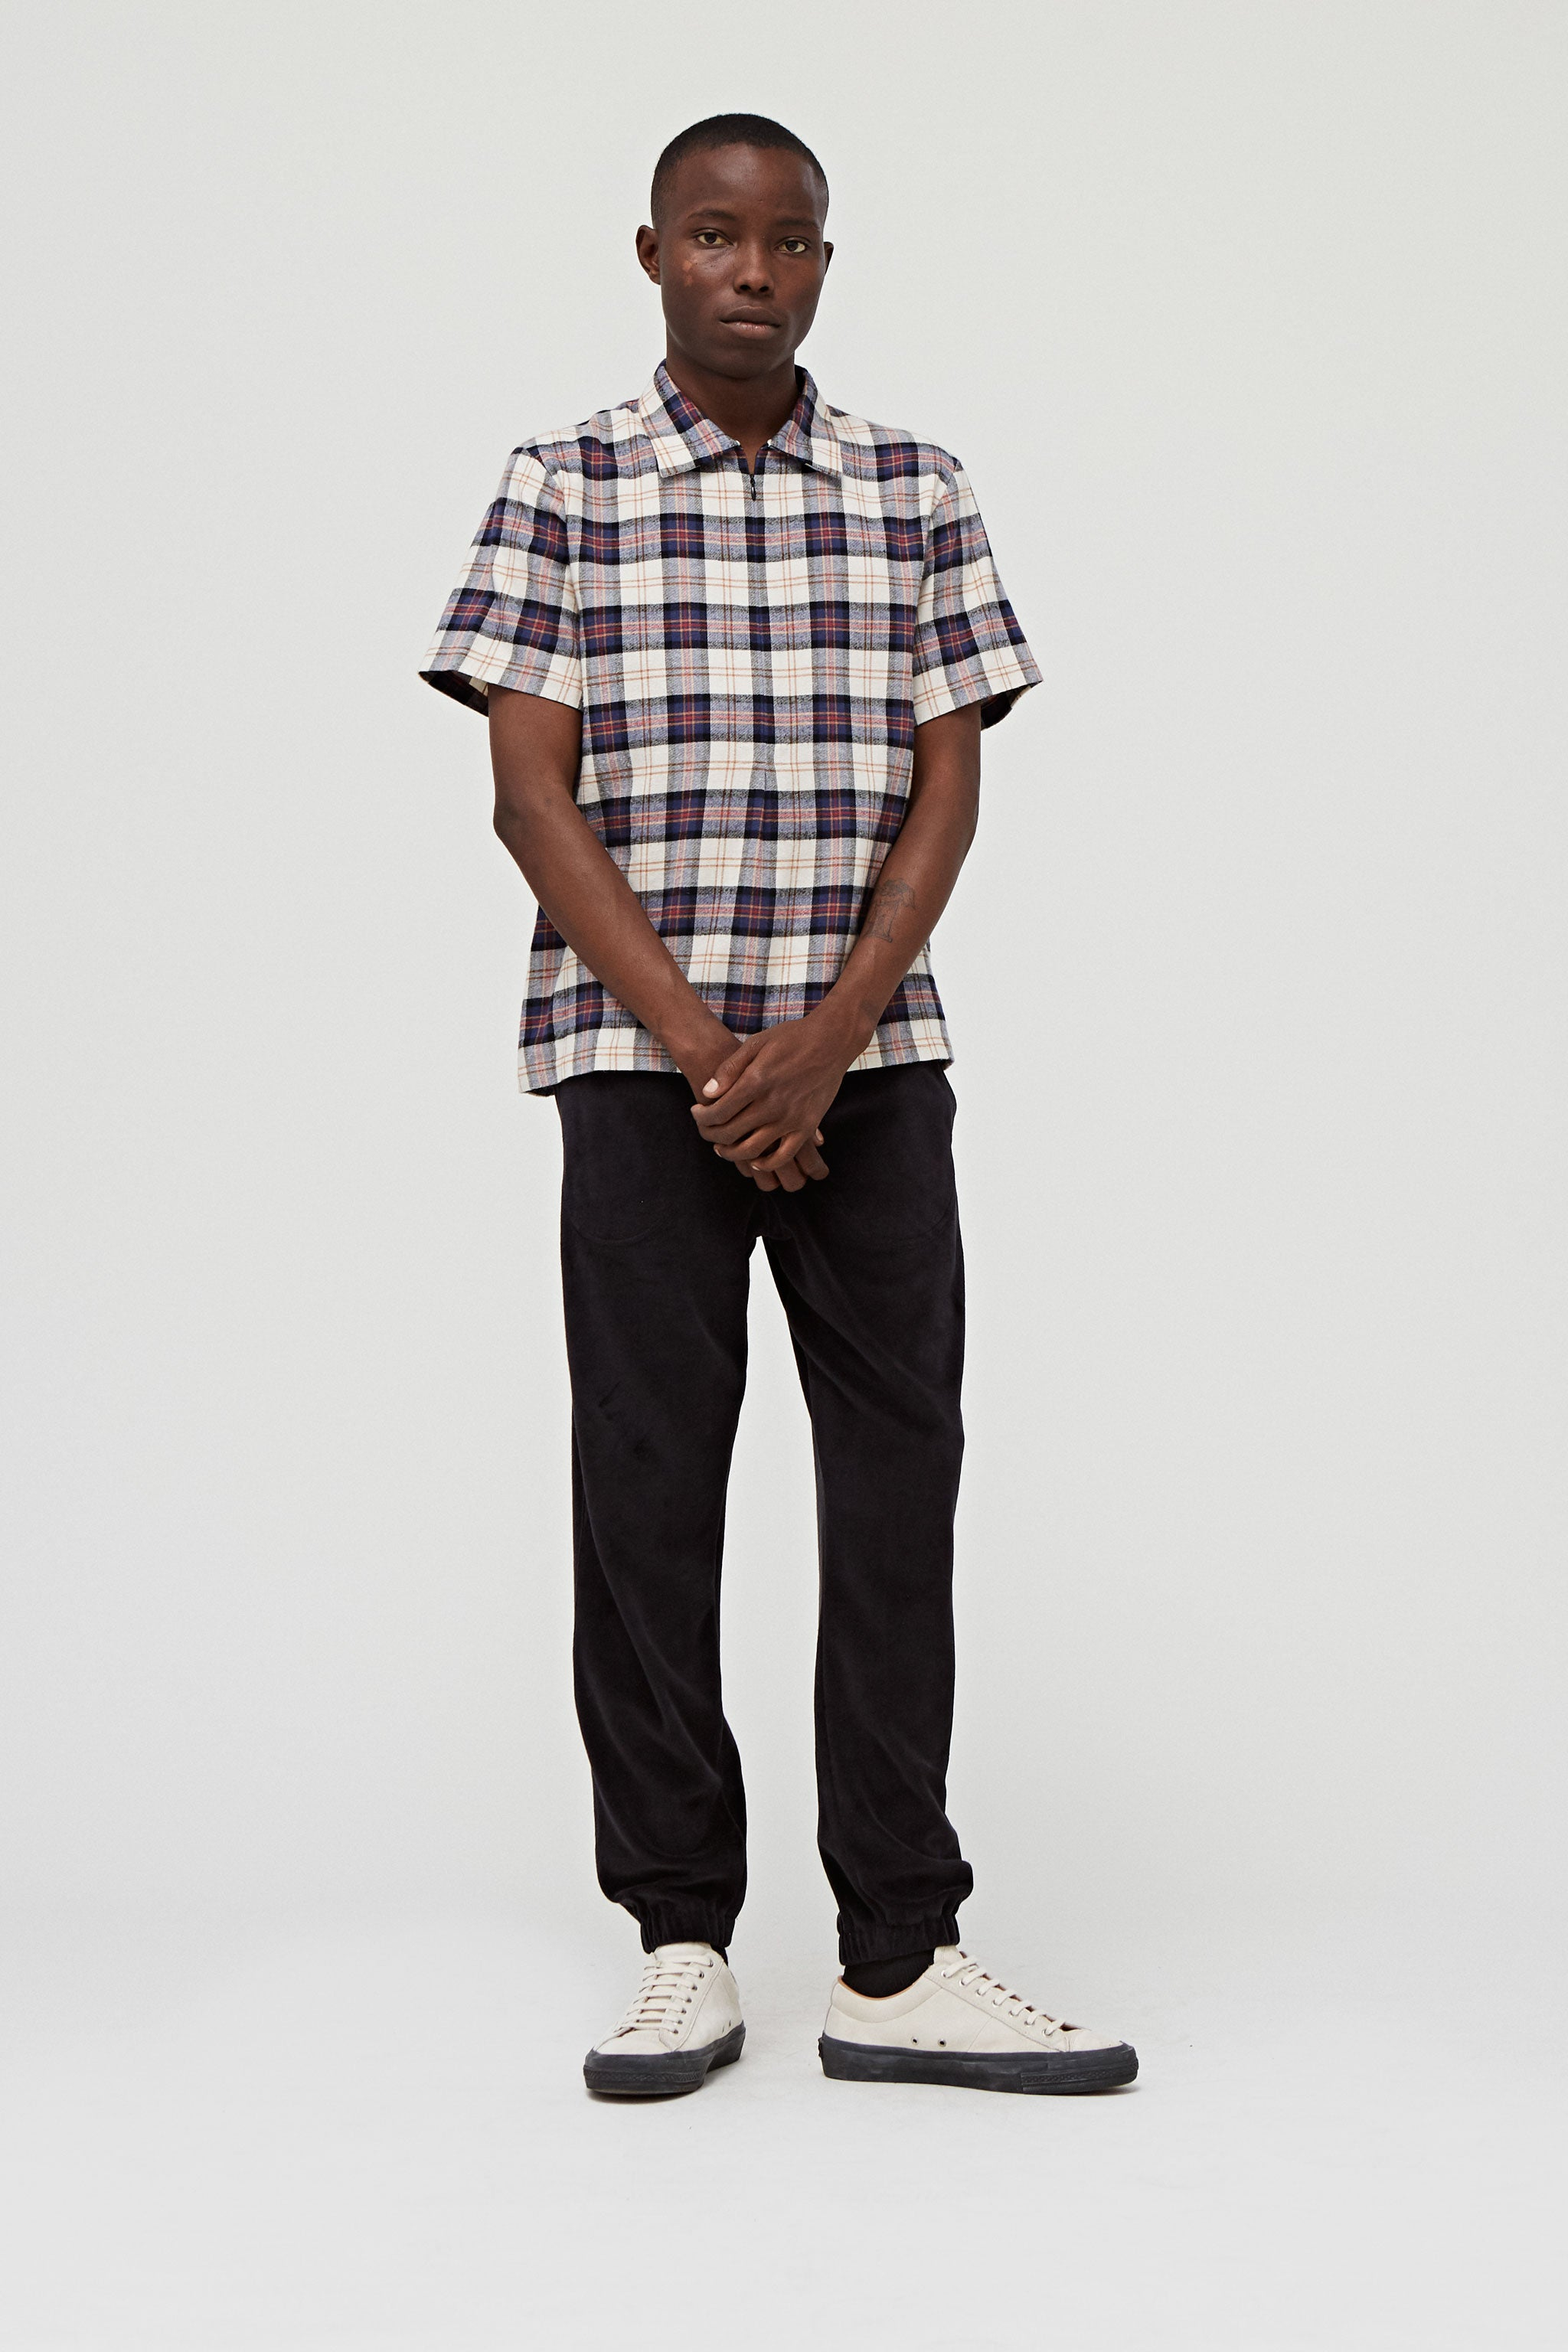 Goodfight FW18 Slicker Zip Polo Khaki Plaid